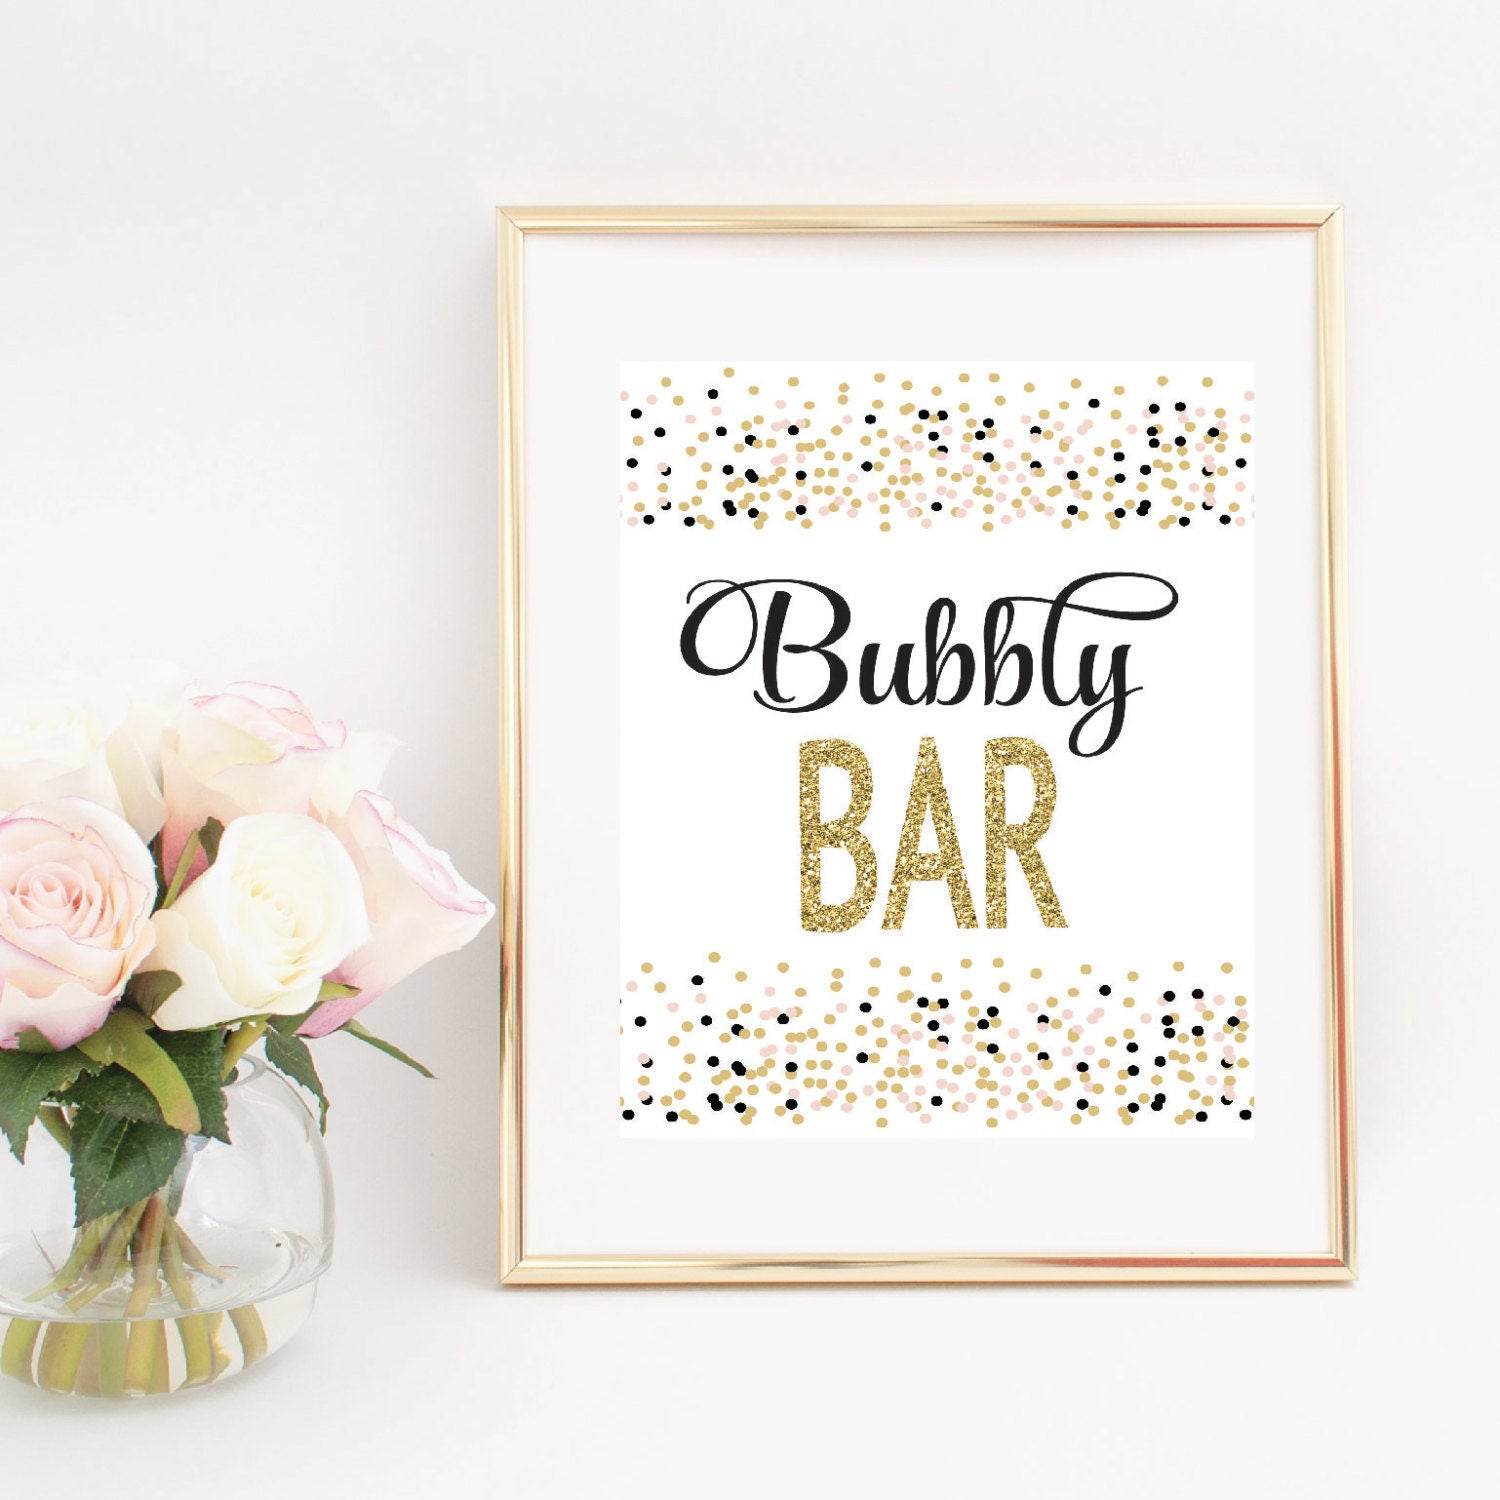 d375e1660 Bubbly bar digital download printable sign in a gold frame beside pink roses